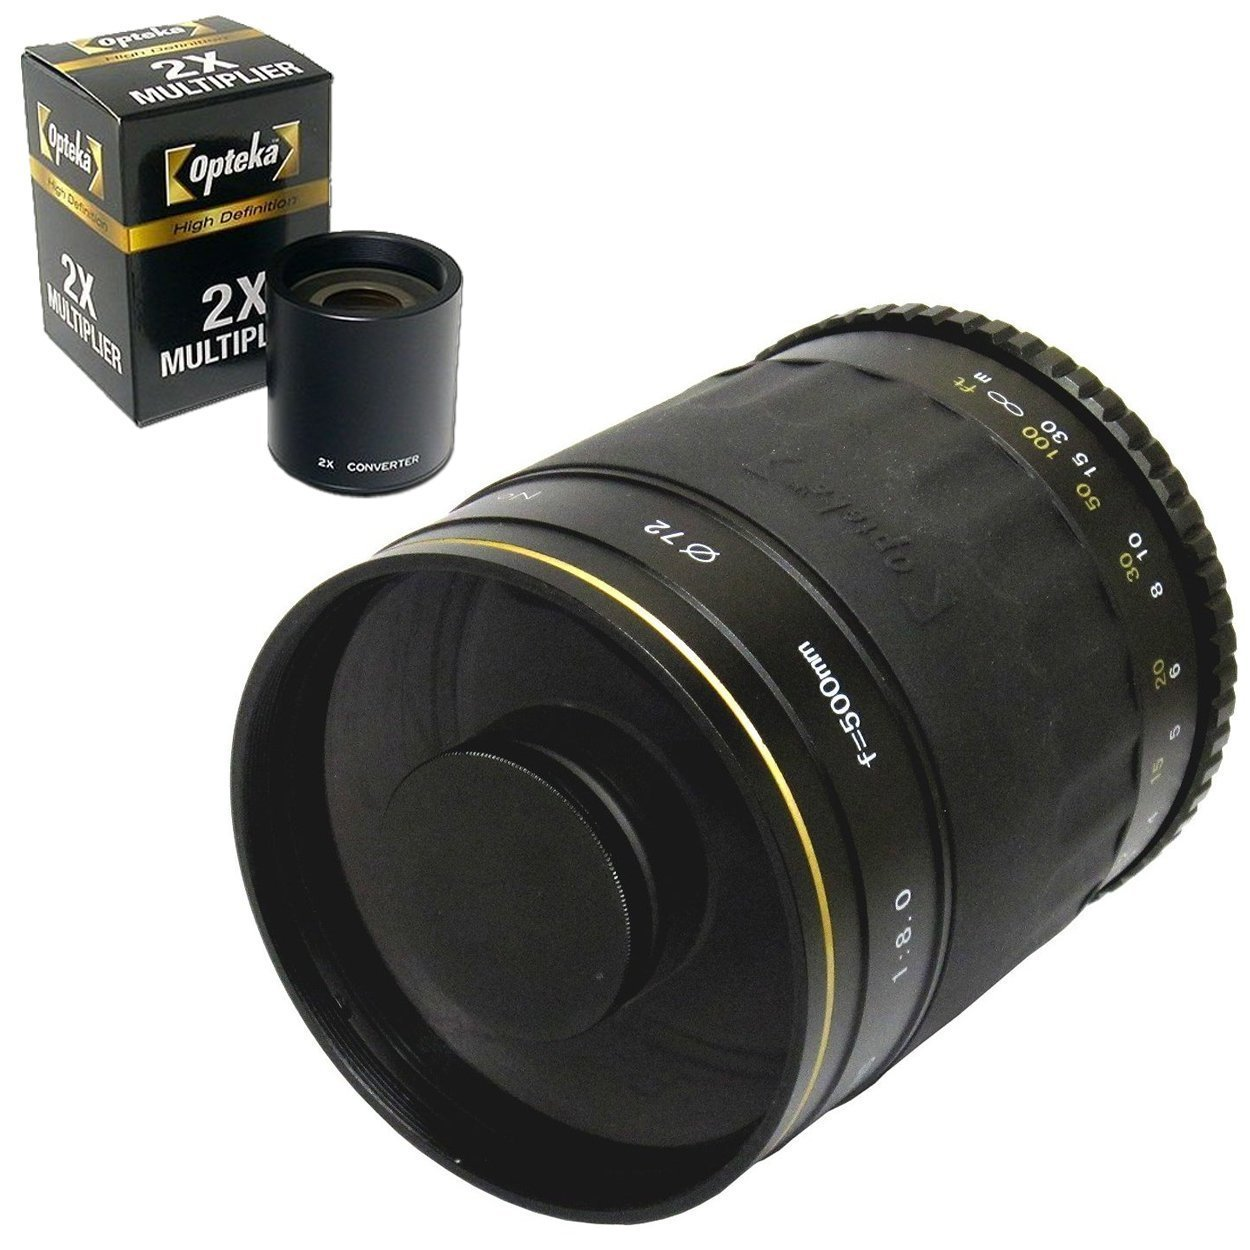 Rokinon 500mm telephoto mirror lens Microsoft Rewards - Search and shop with Microsoft